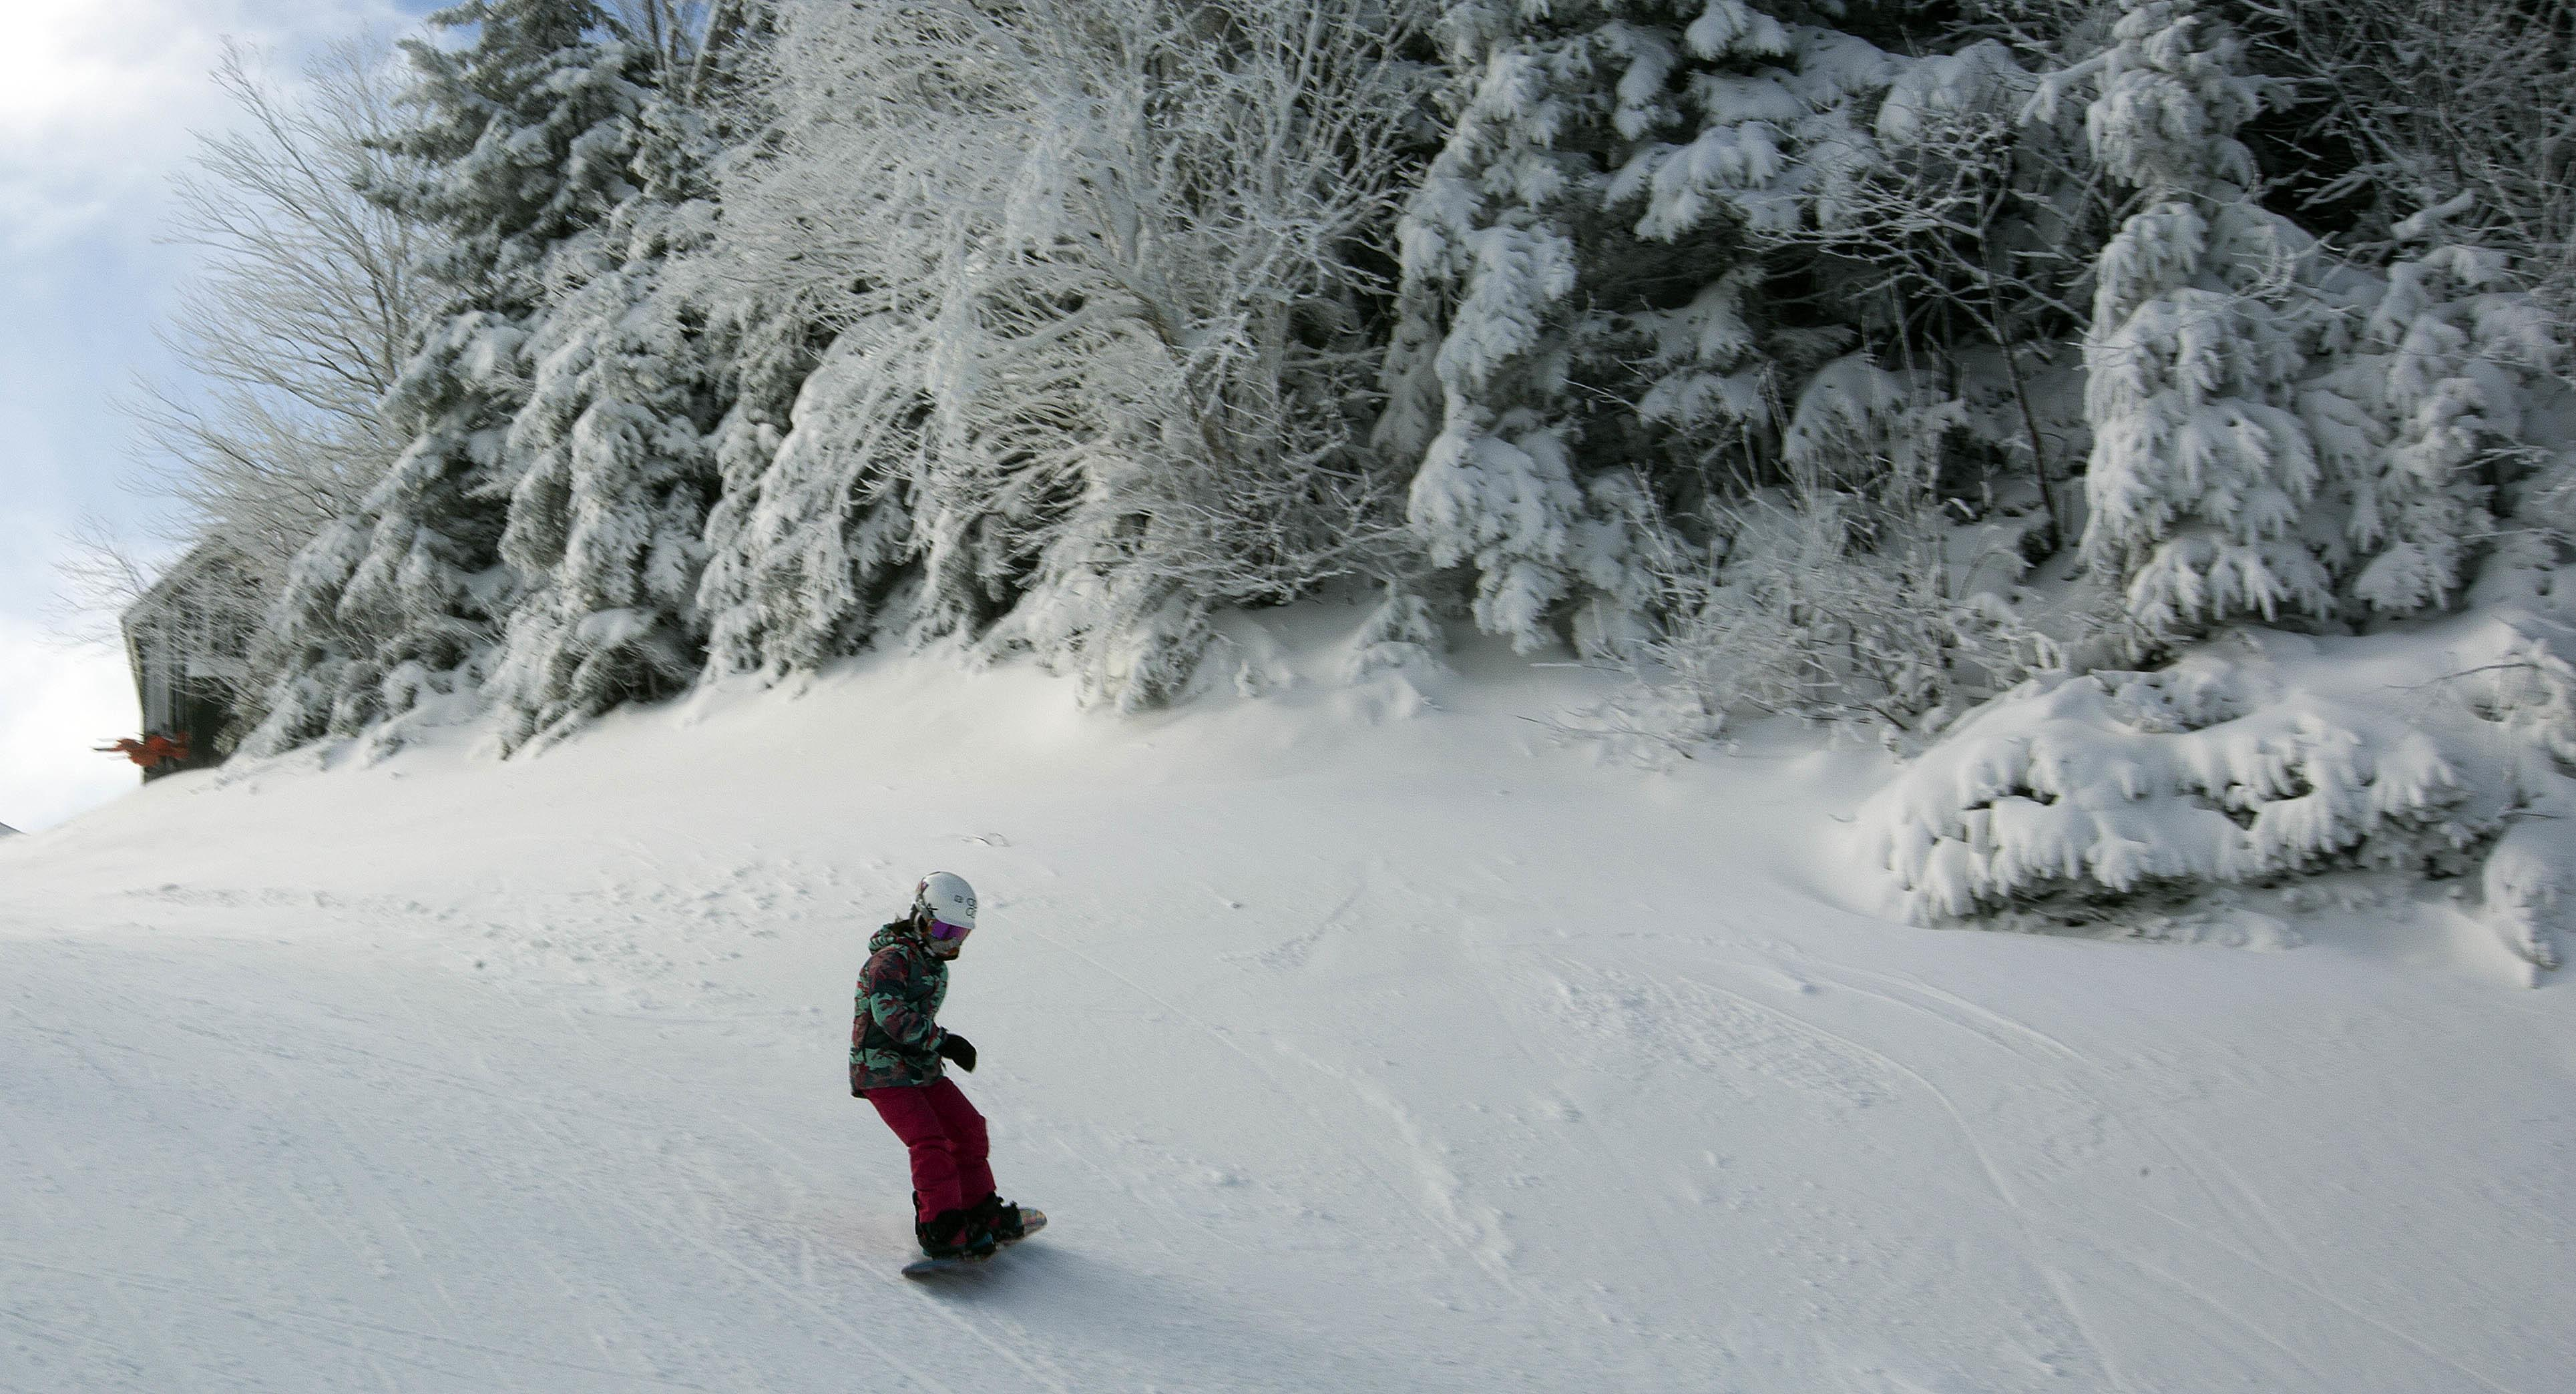 c031ce1a46c2 A young snowboarder takes the first run of the season on top of the  mountain on